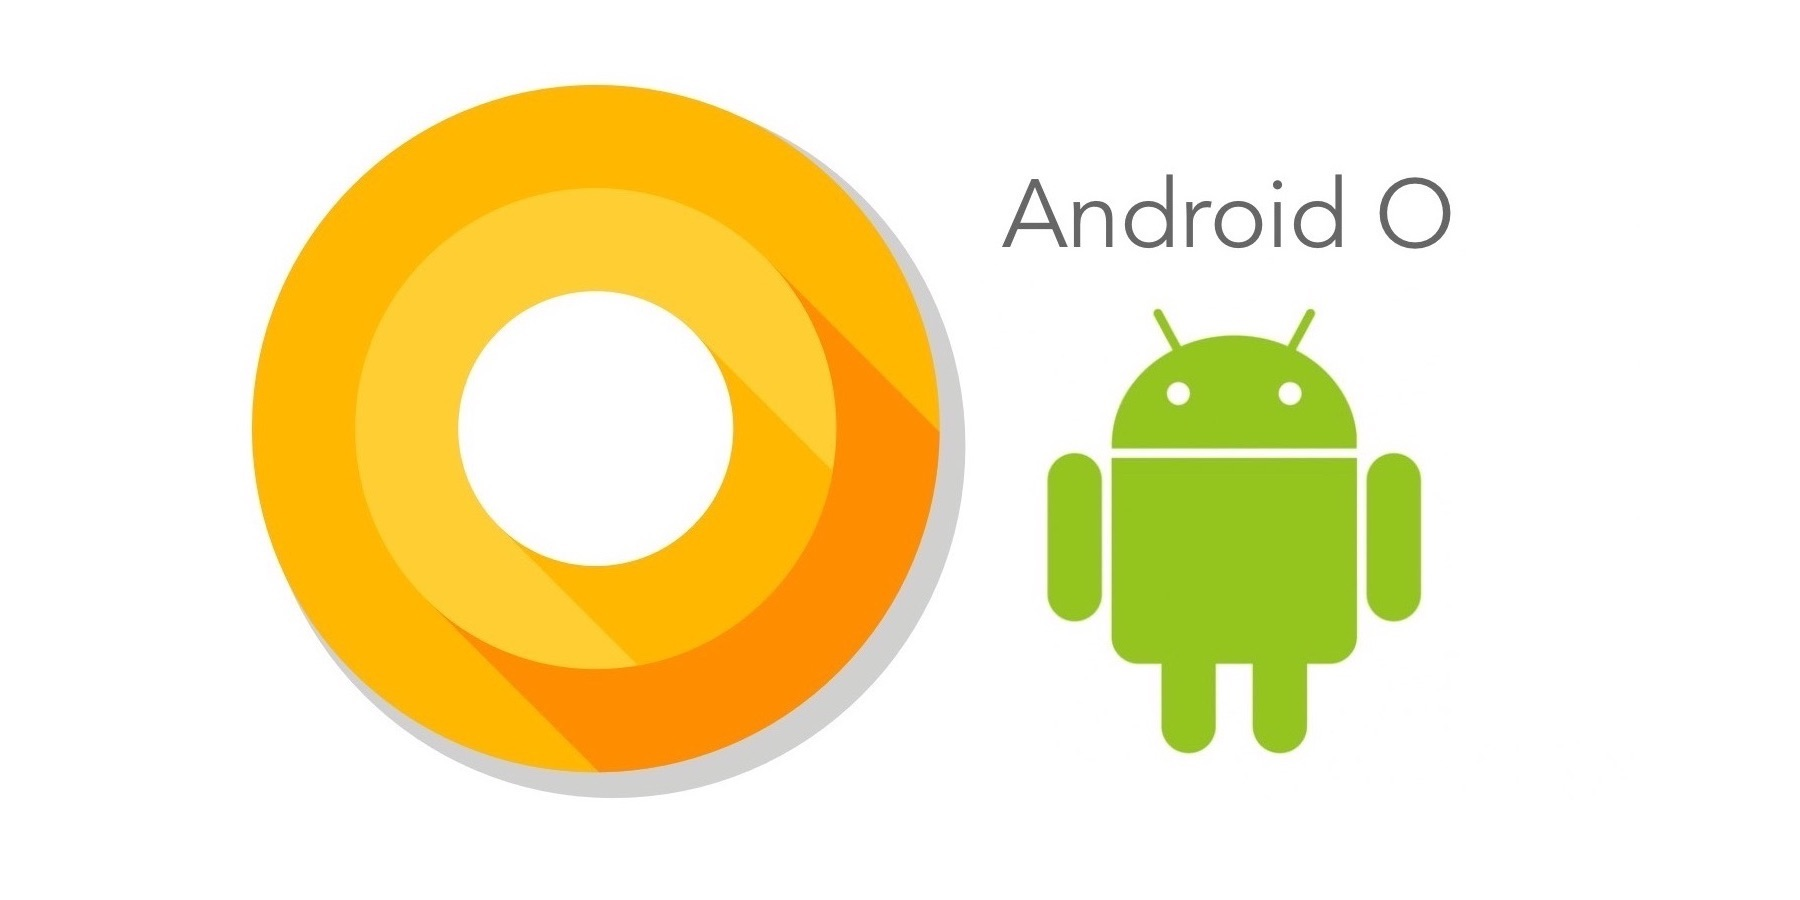 Android O officially launching on August 21